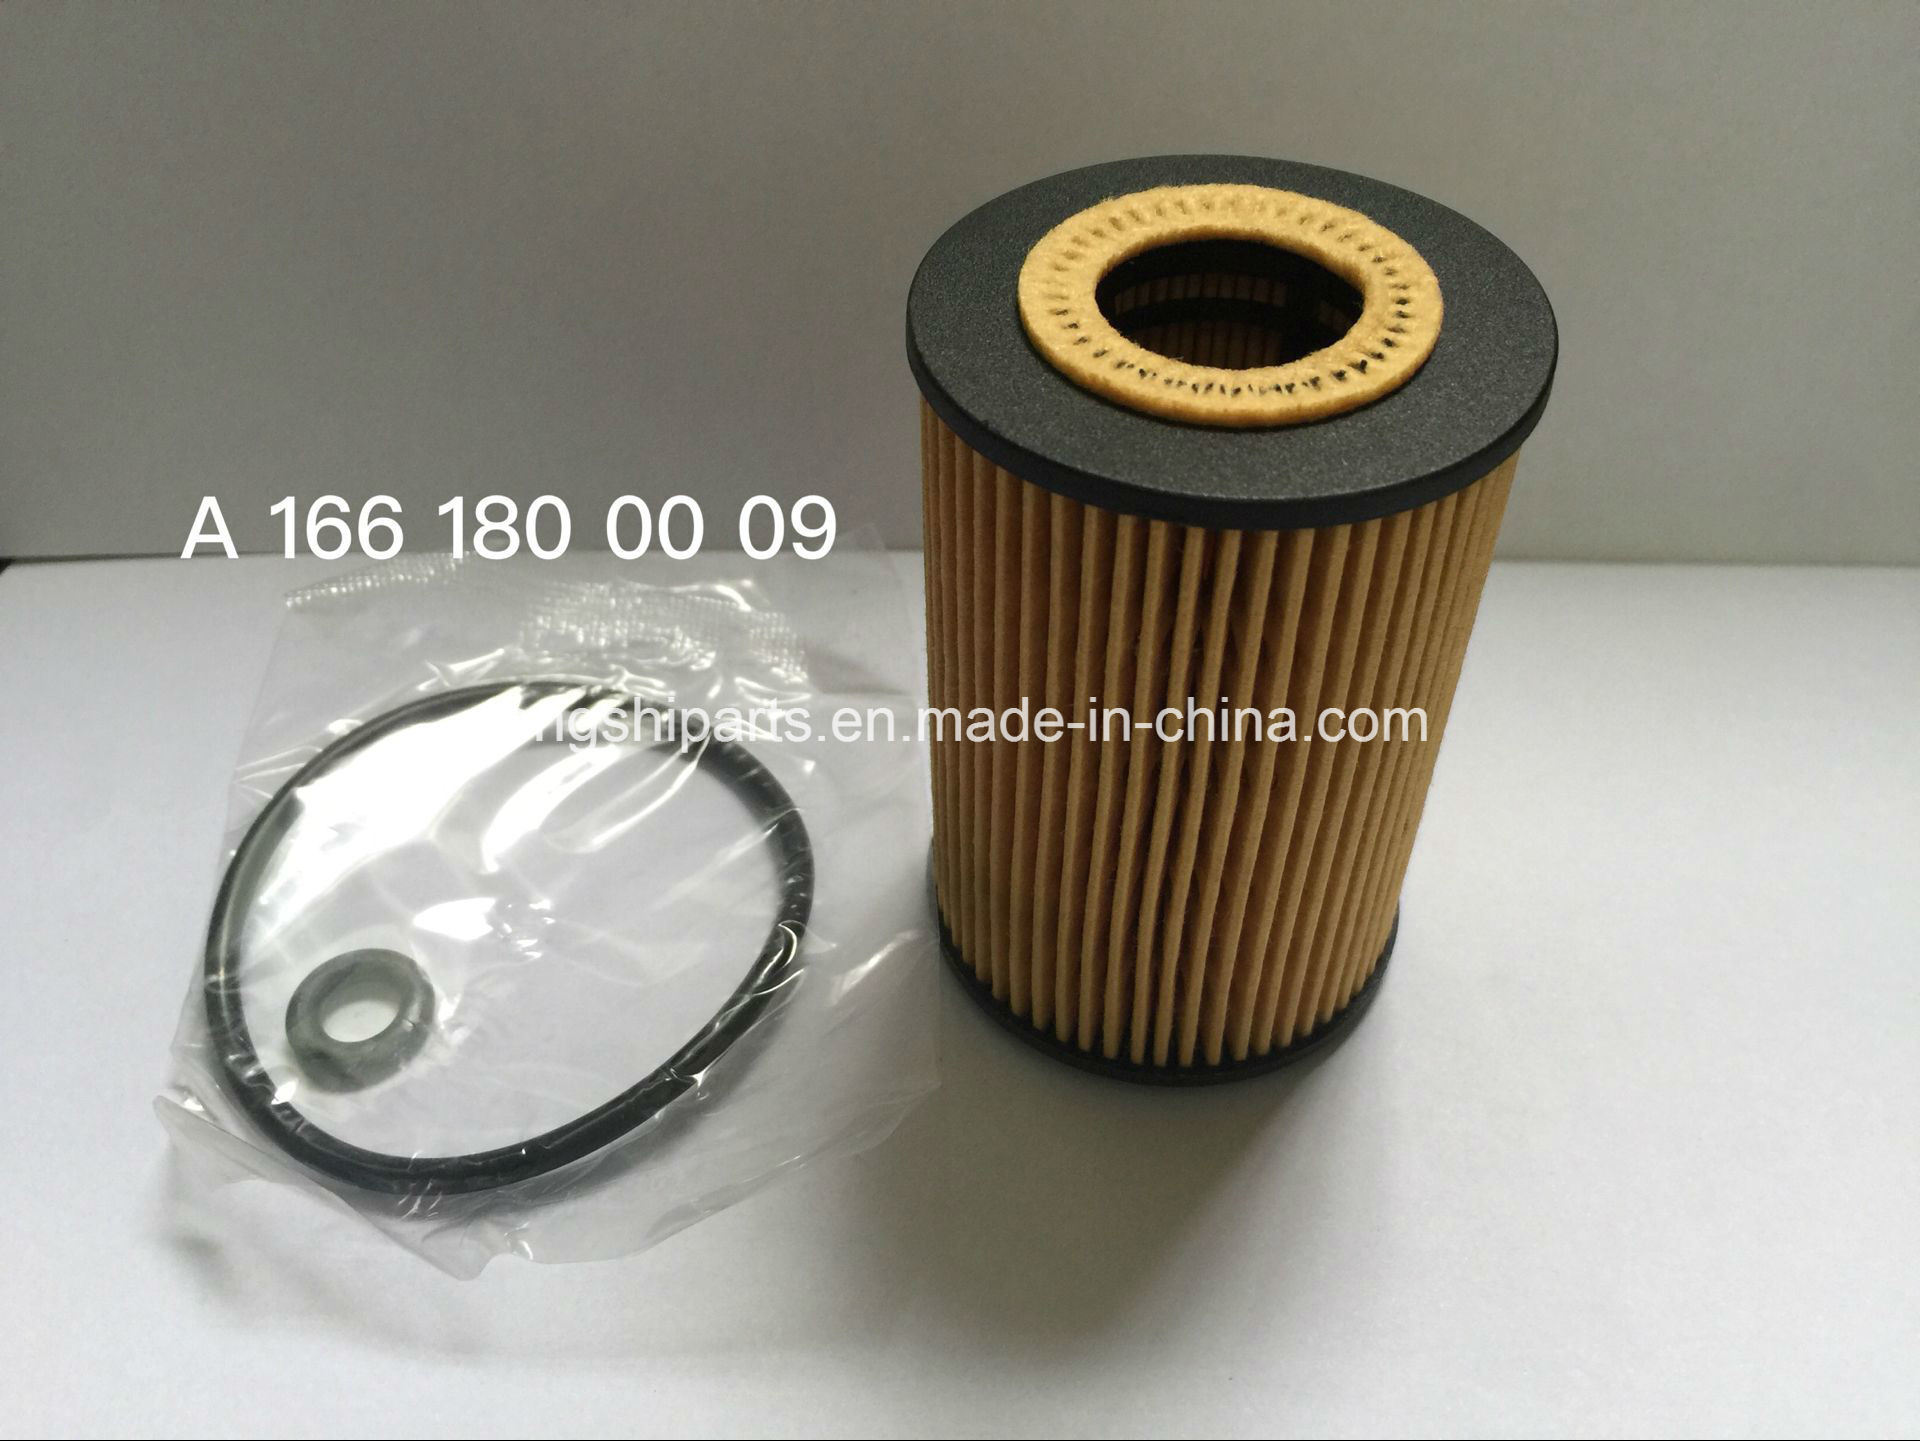 Auto Parts Oil Fiter for Mercedes-Benz